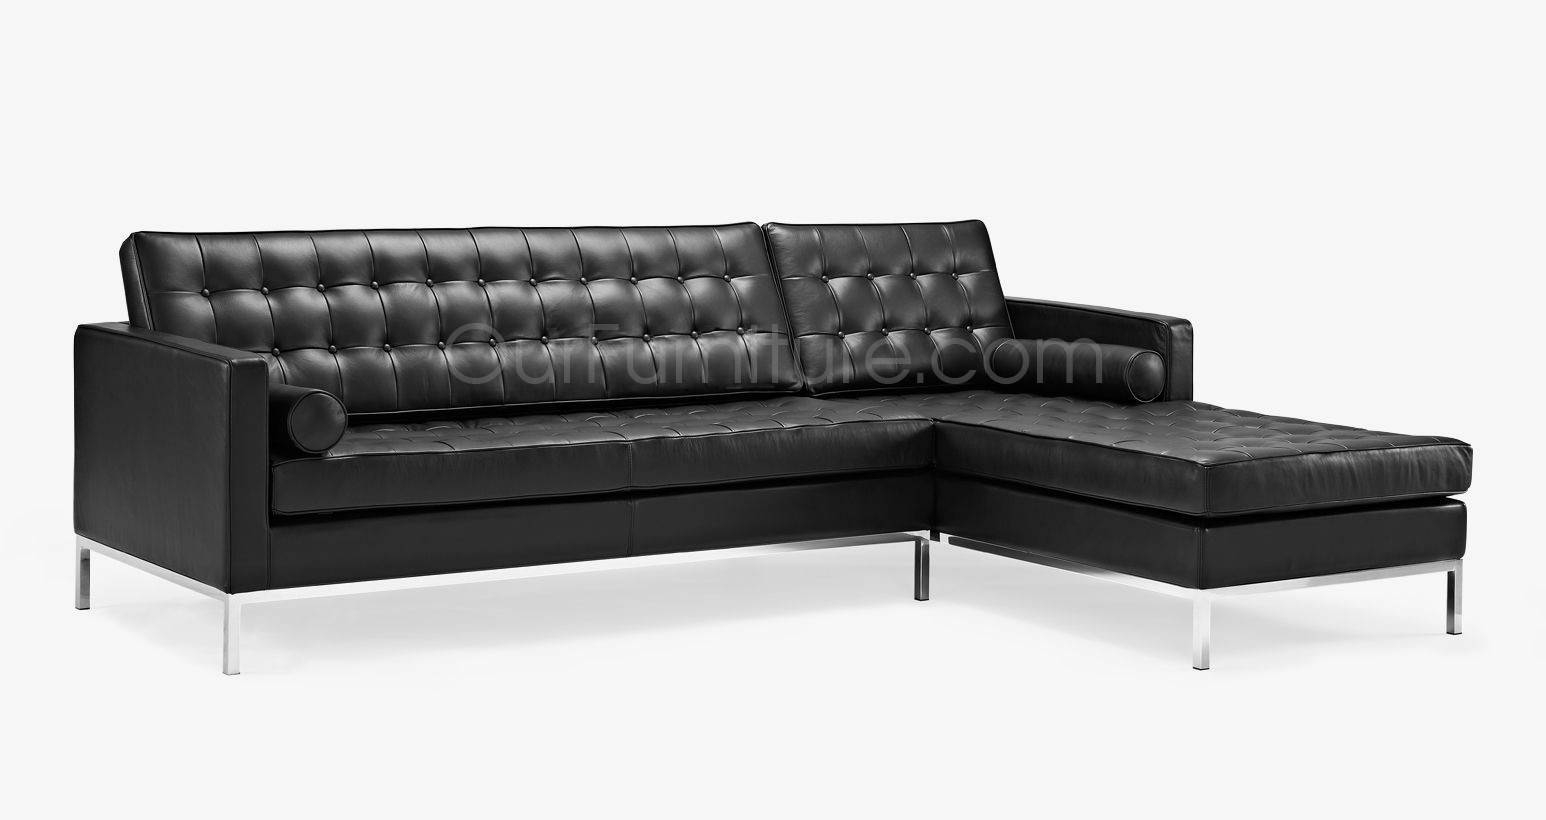 Florence Knoll Style Corner Sofa with Florence Knoll Style Sofas (Image 6 of 25)